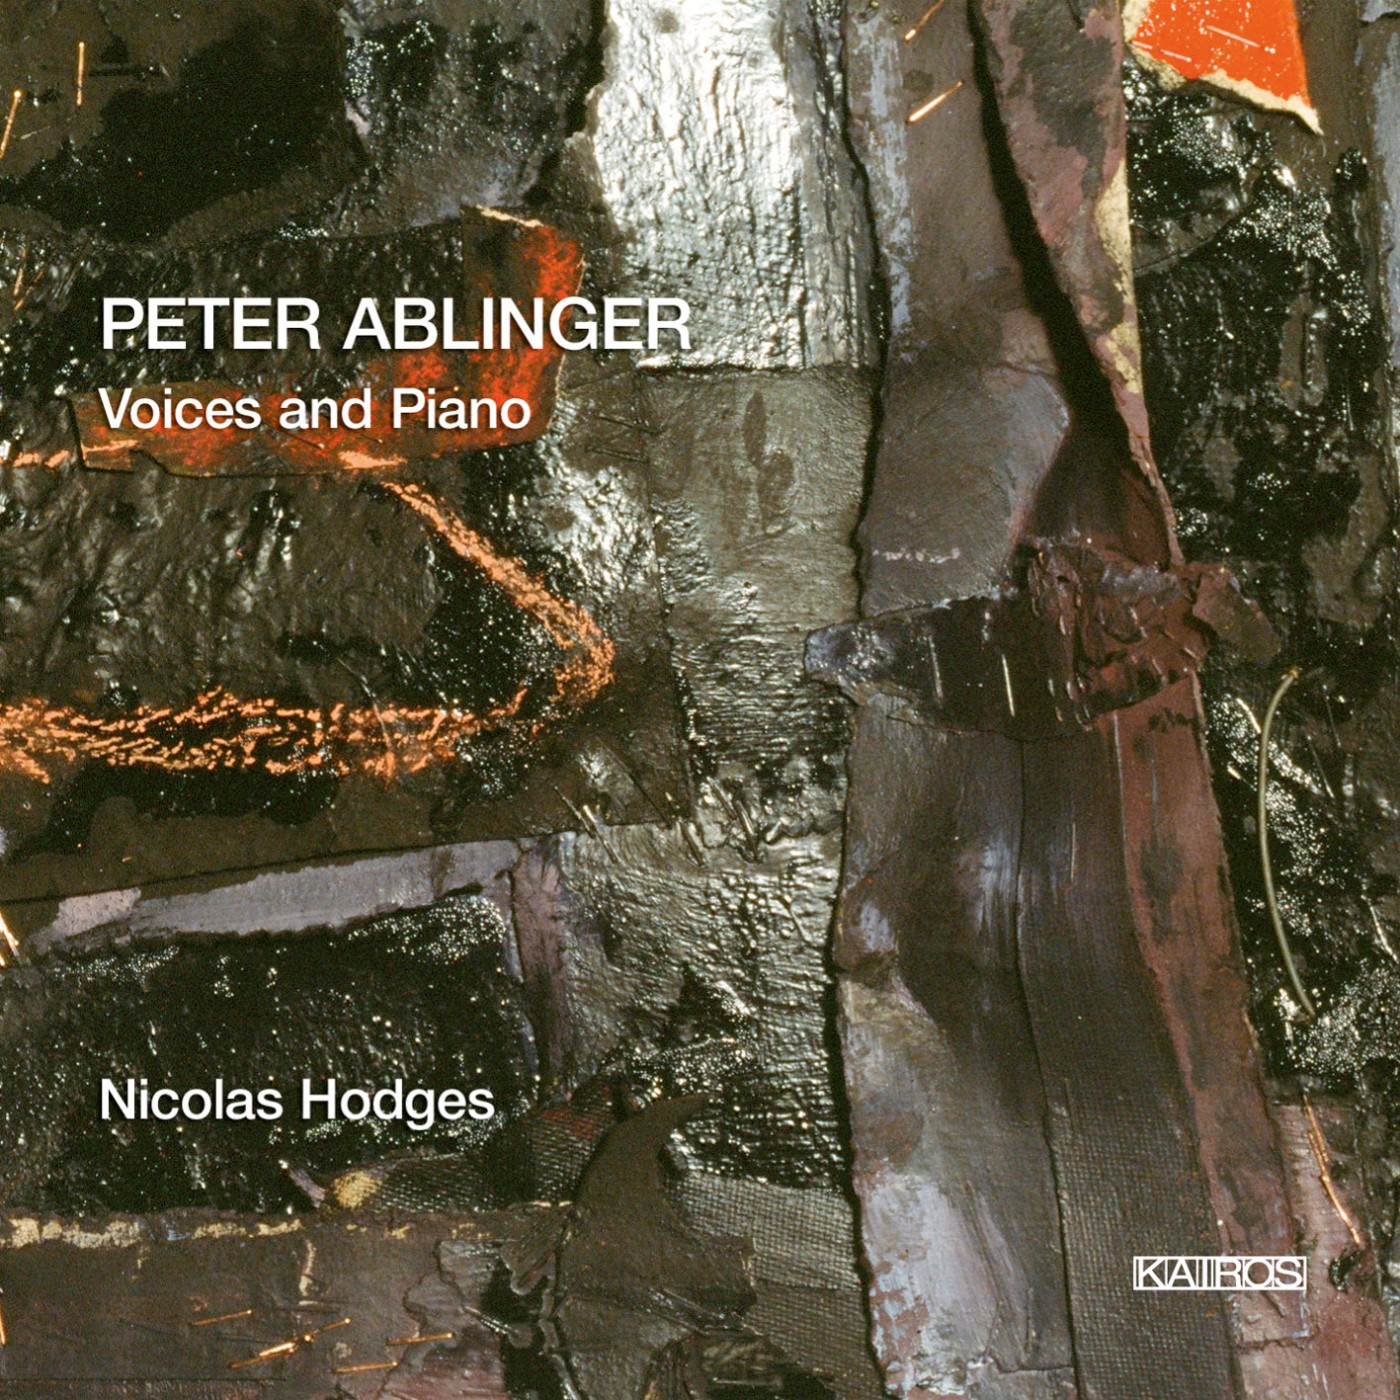 Peter Ablinger / Voices and Piano // Nicolas Hodges